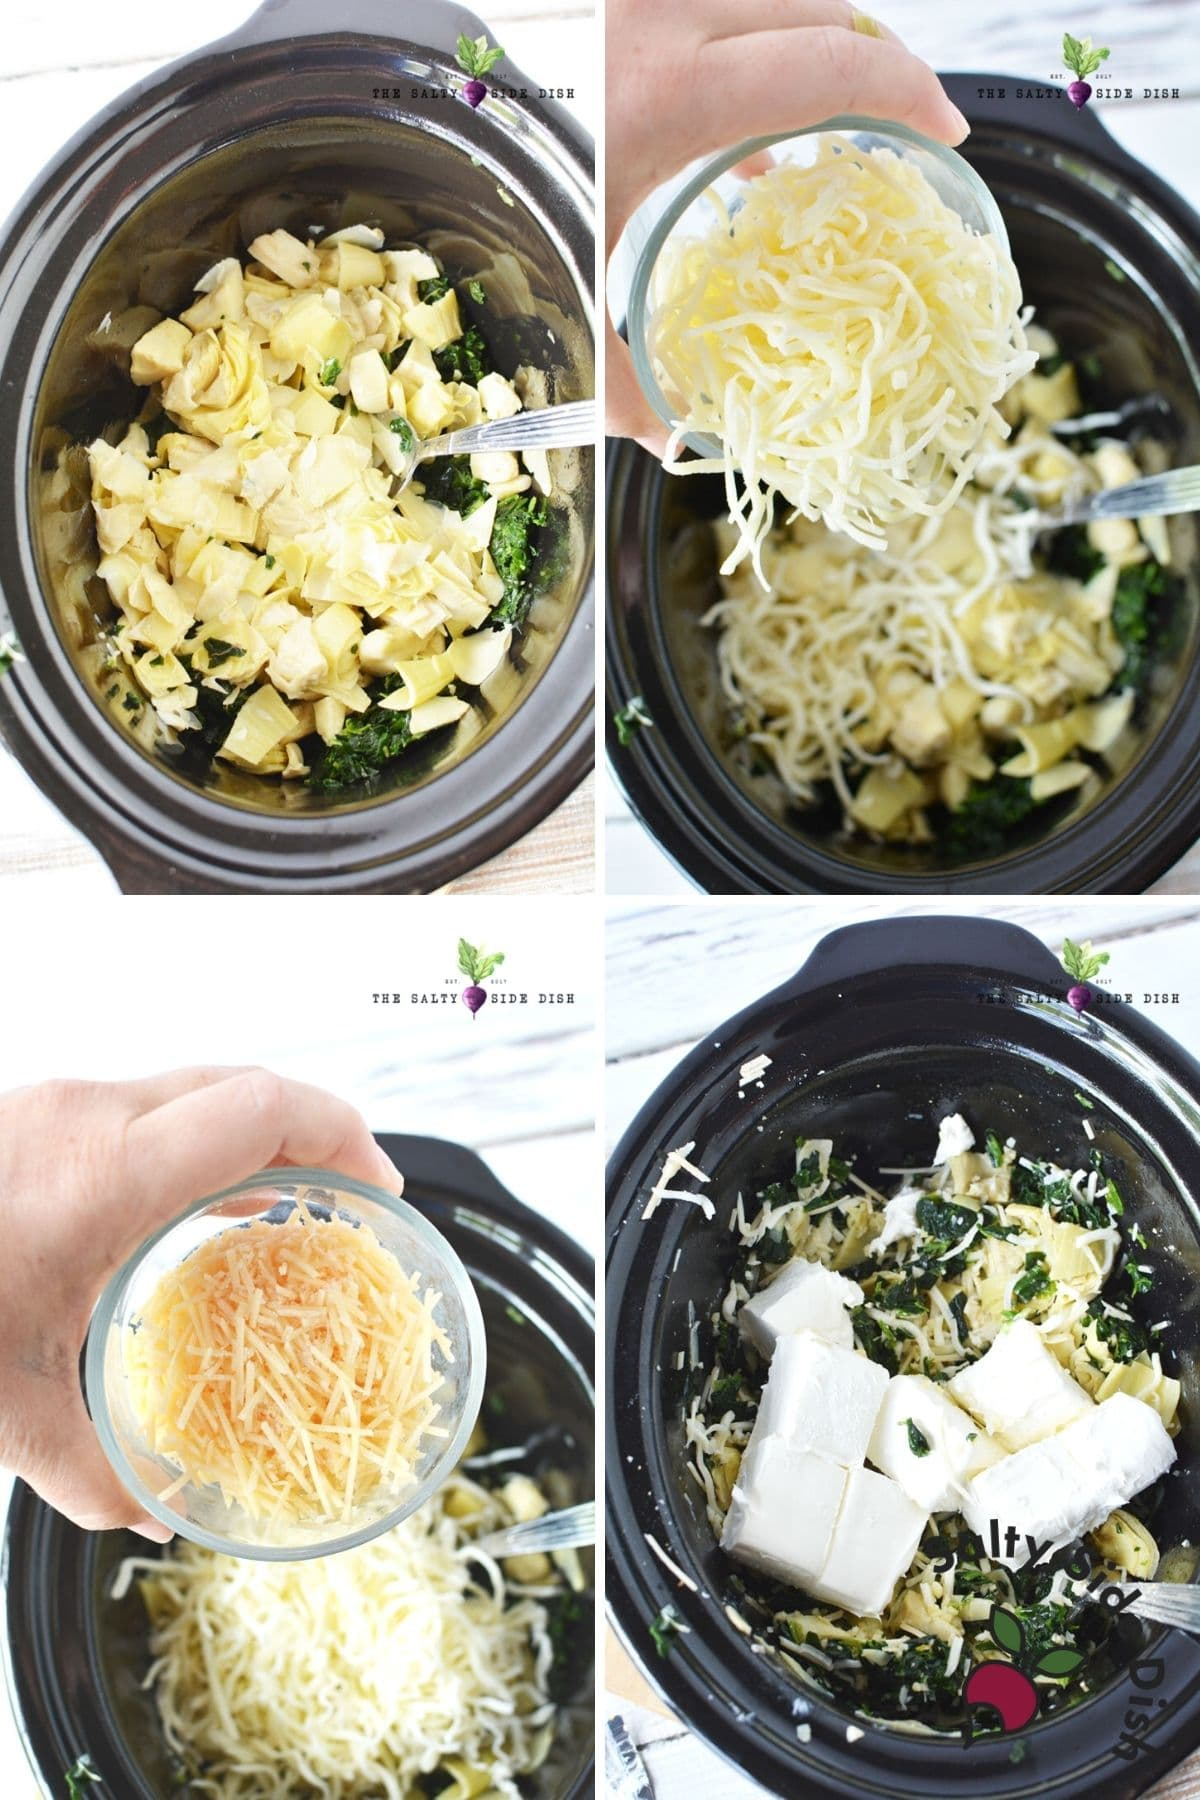 crock pot spinach and artichoke dip recipe with cheese, parmesan and cream cheese ready to be slow cooked